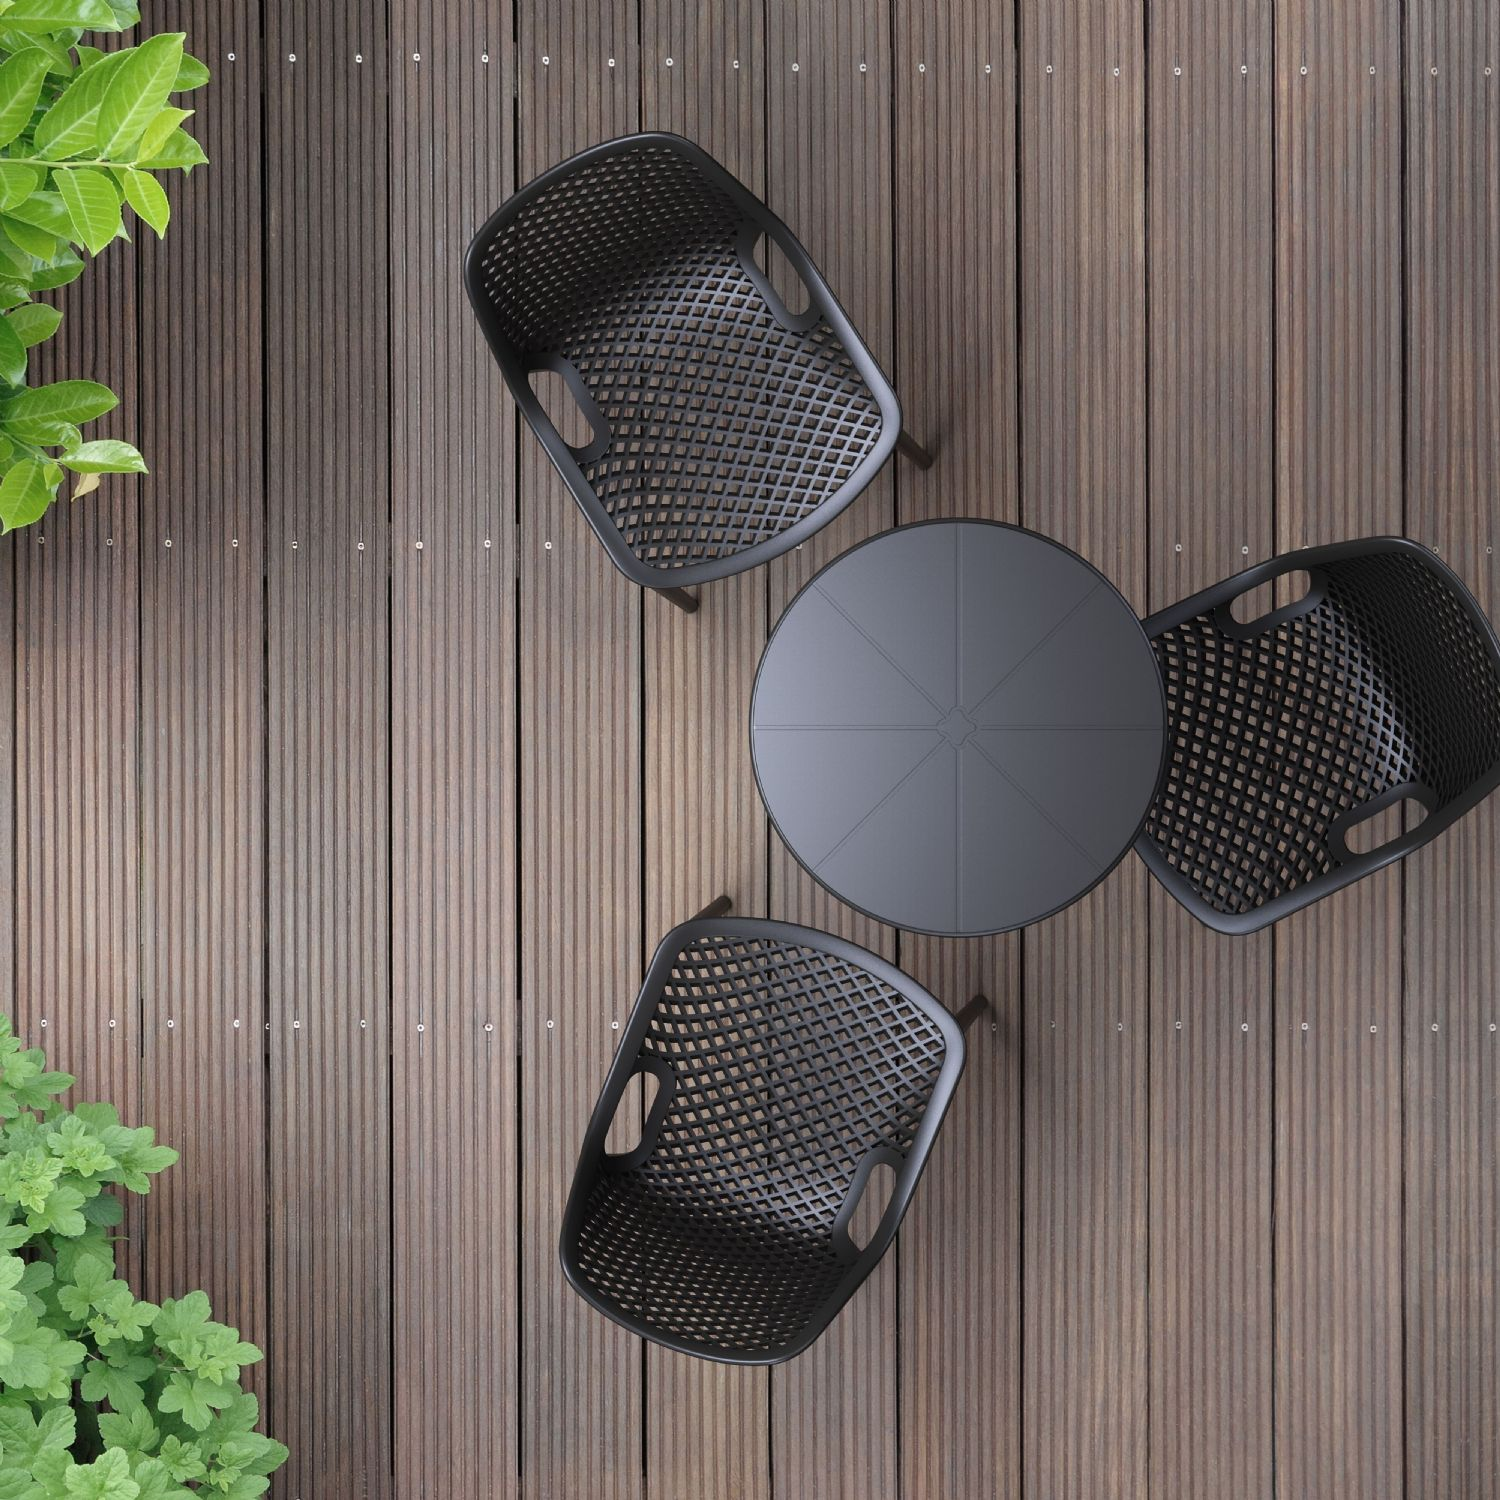 Octopus Outdoor Dining Table 24 inch Round Taupe ISP160-DVR - 2